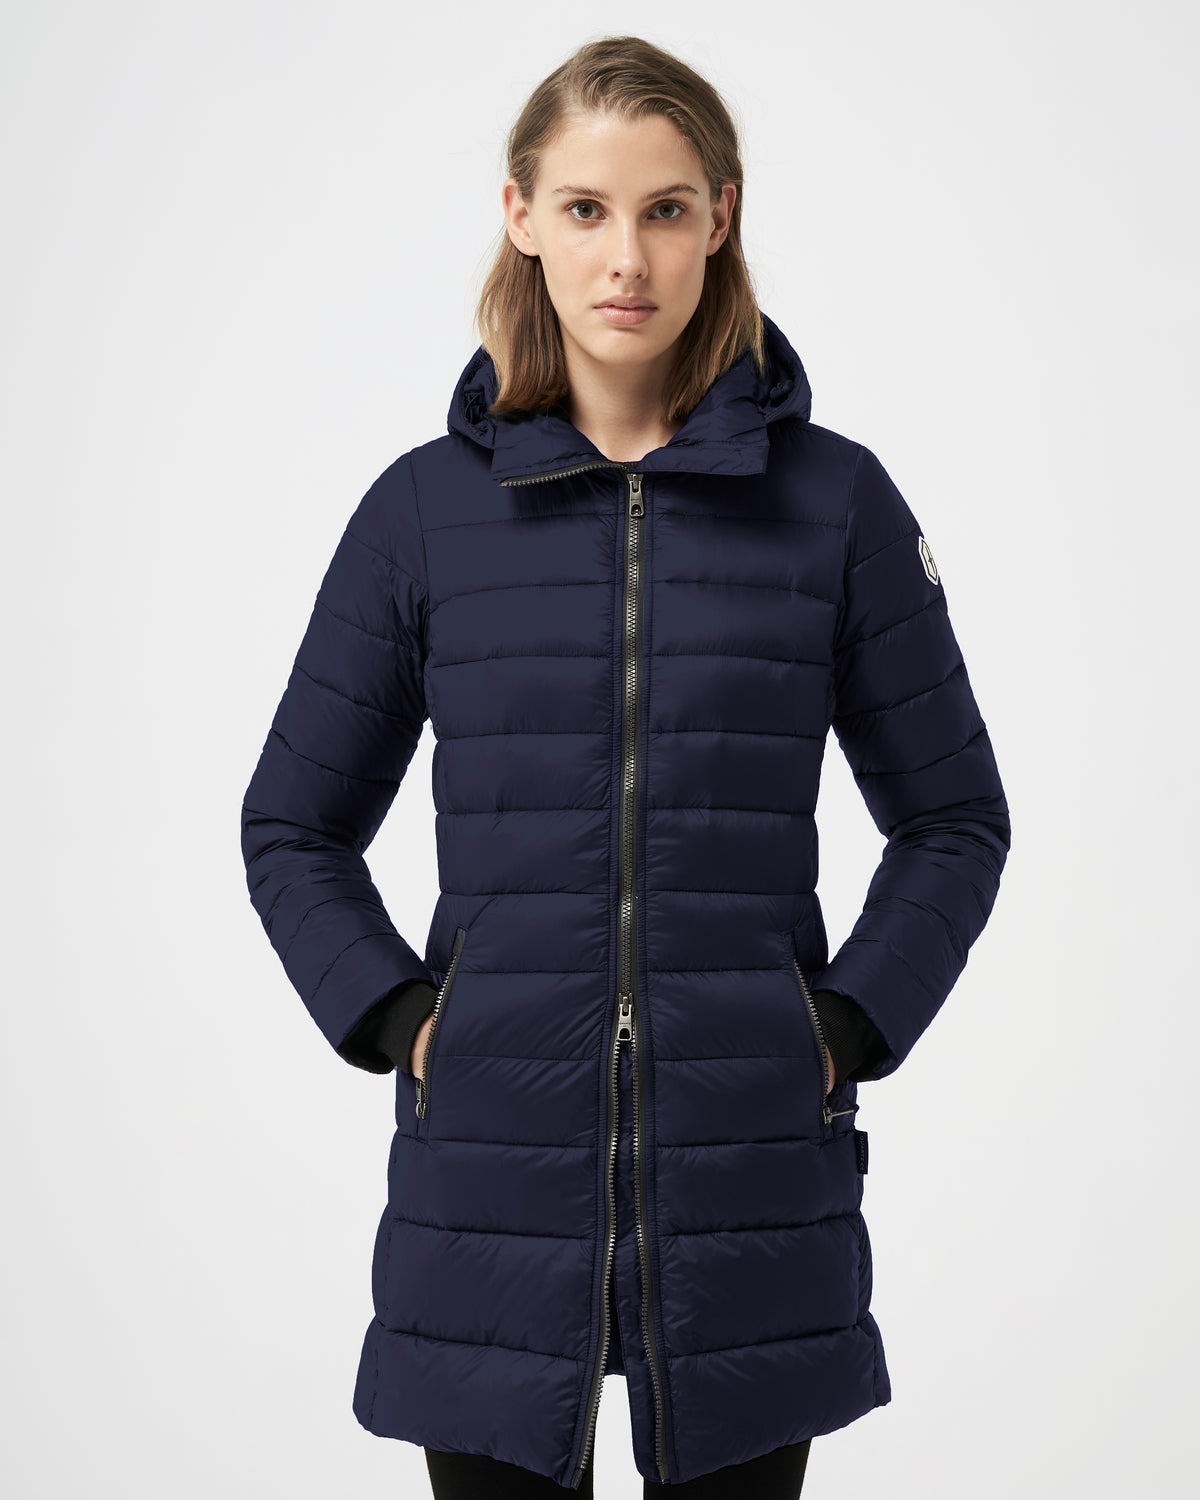 Quartz Co. - Canadian Made Winter Jackets | Women | Lausanne | Women Down Lightweight jacket | Moonlight Ocean